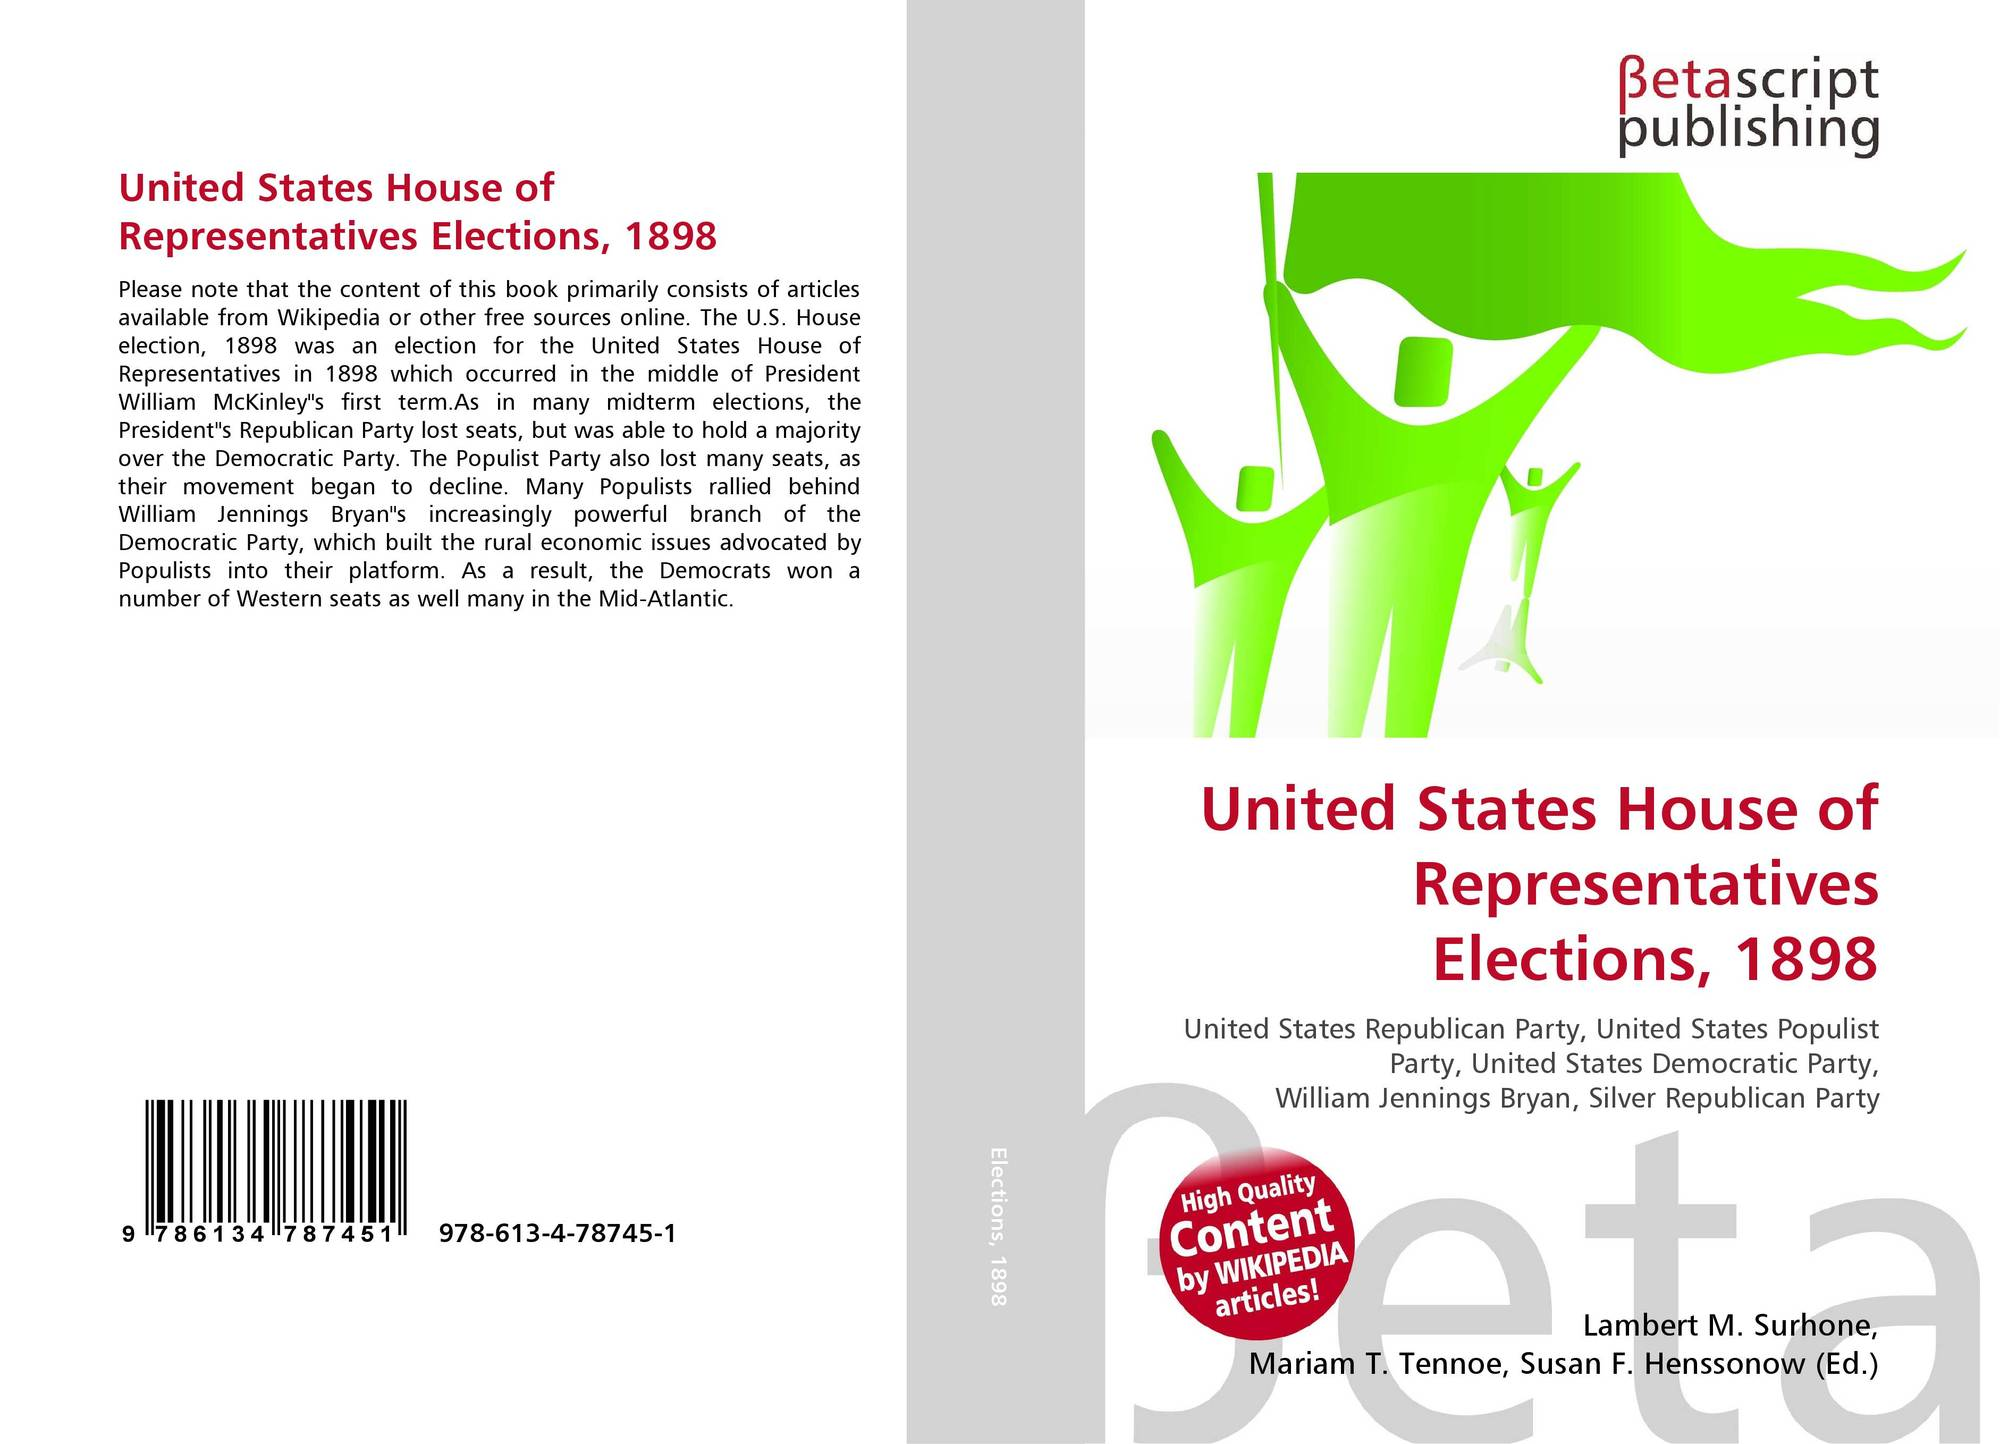 an overview of the foundations and impact of the republican party in the united states This section provides a high-level overview of the historical background and developments leading up to the establishment of the social security system in the united states.